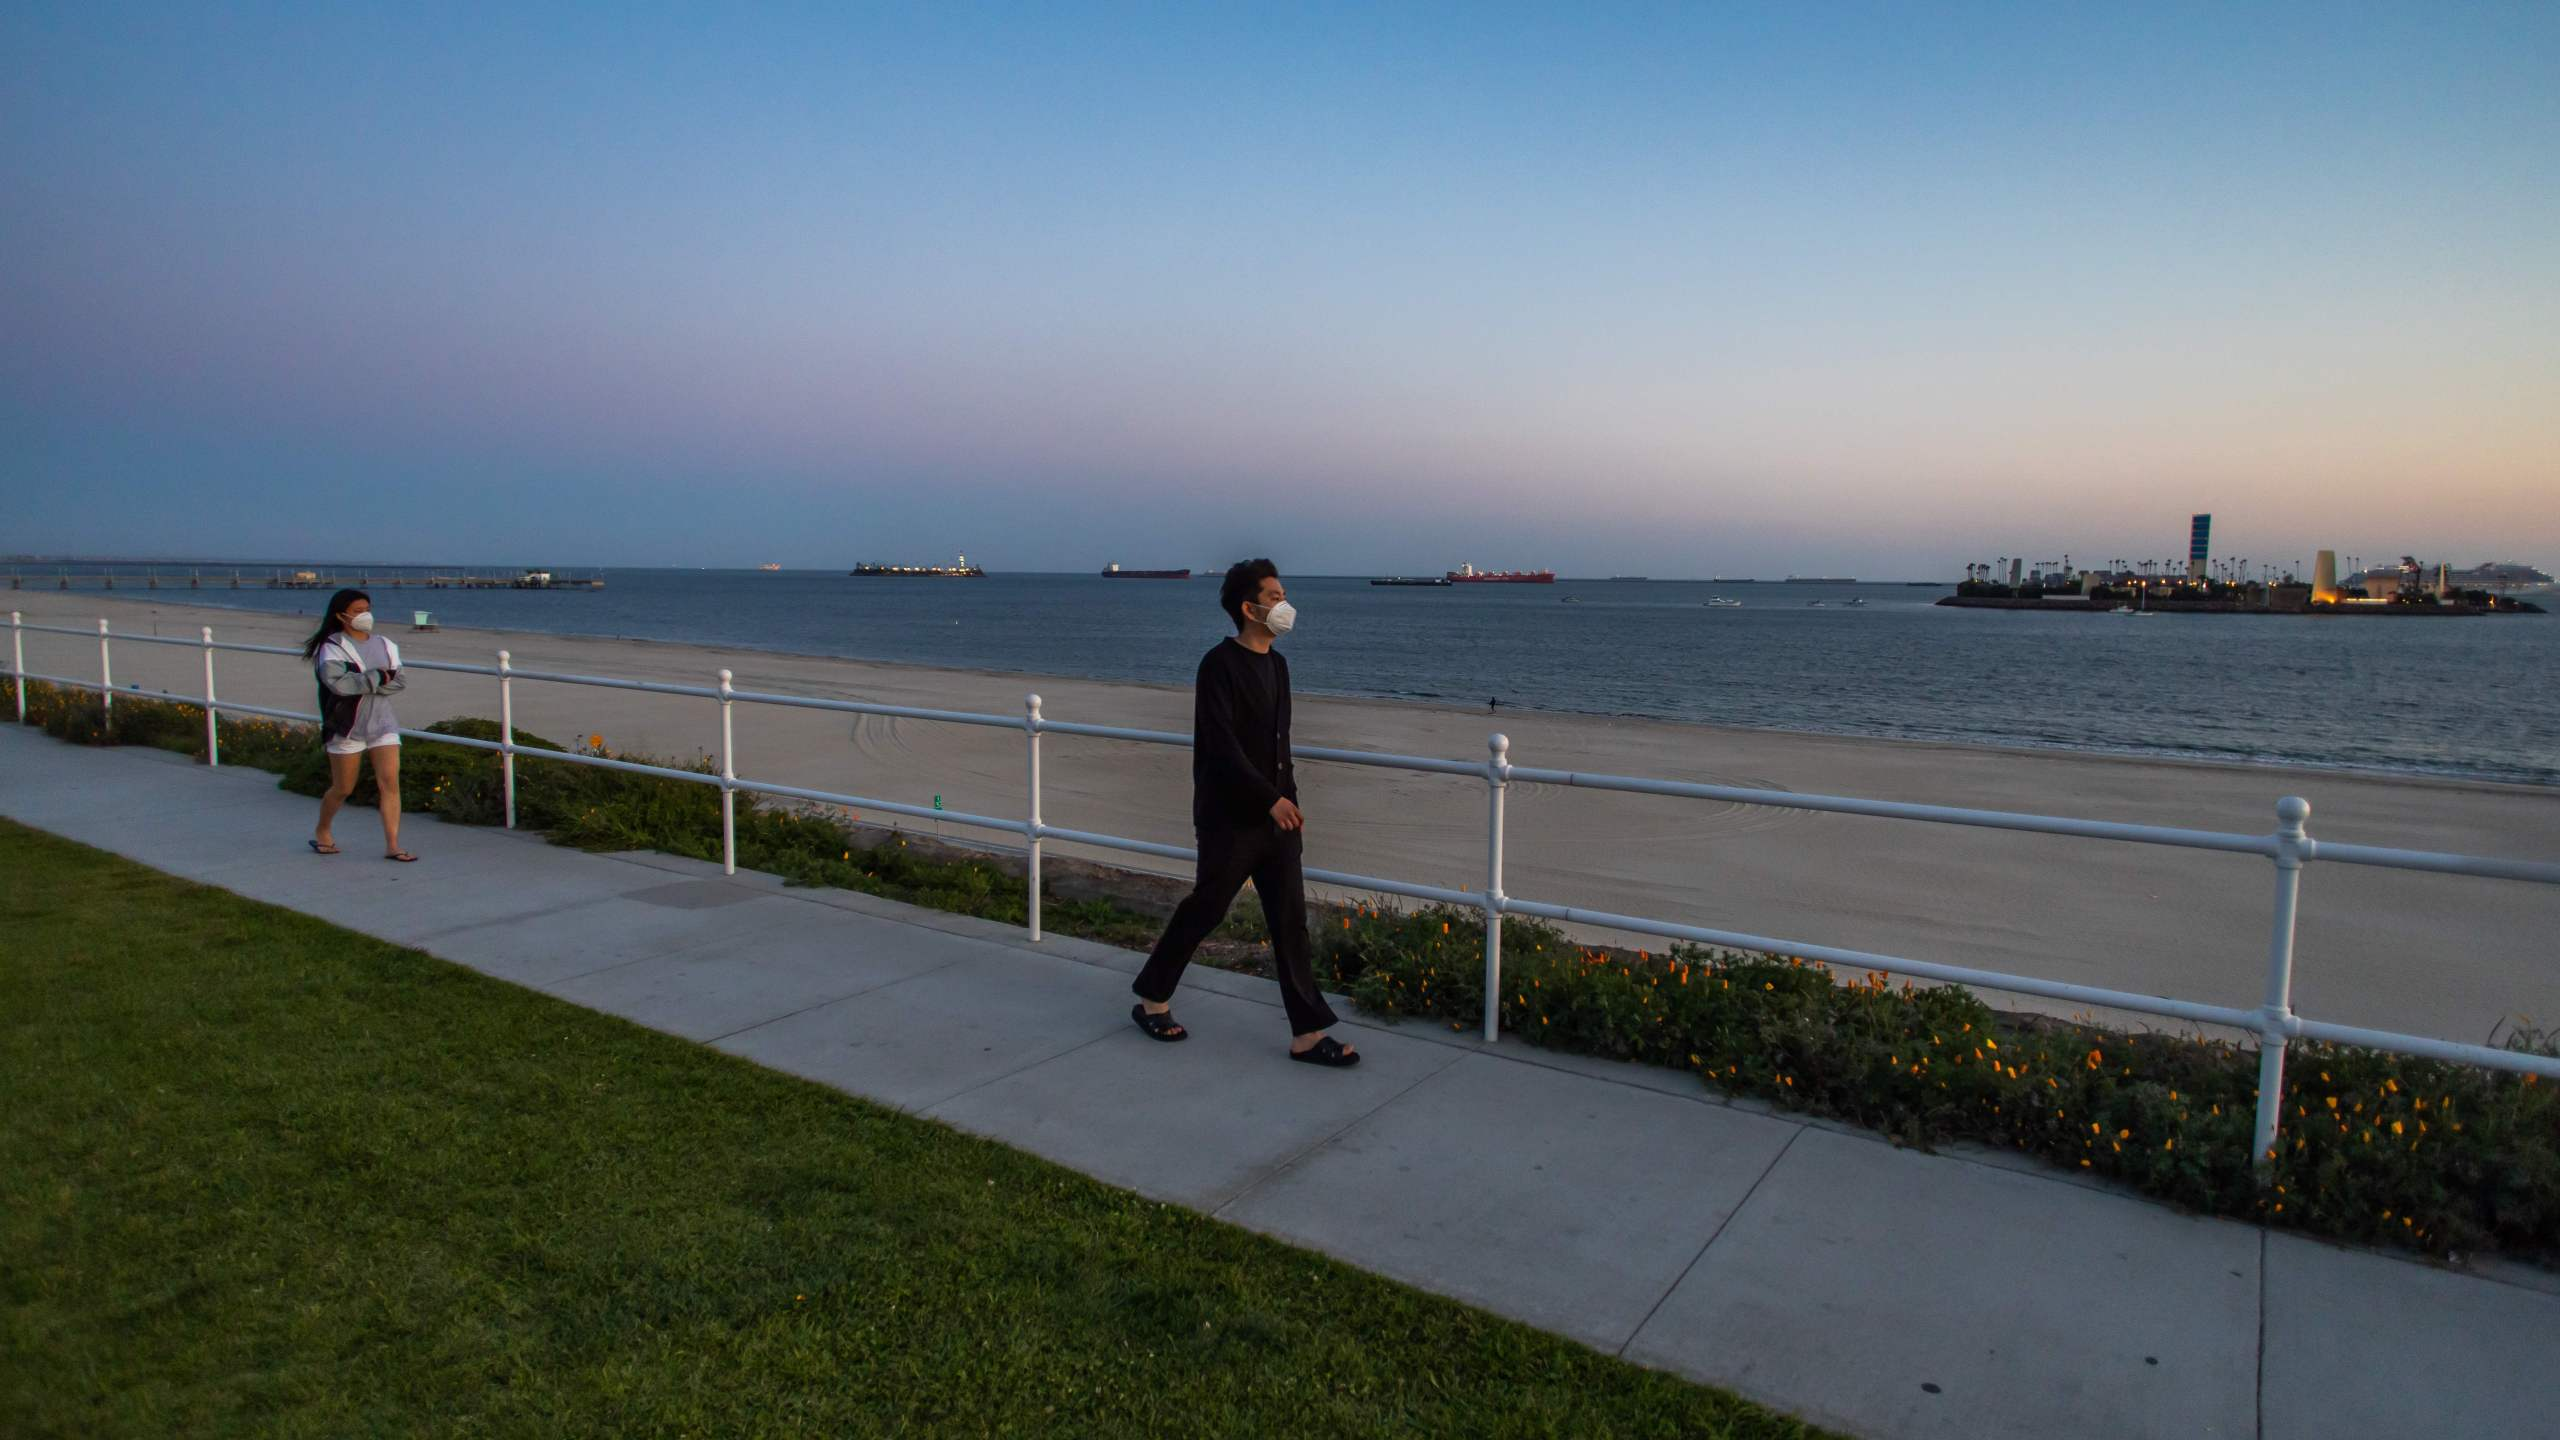 People walk by the sea in Long Beach, California on March 29, 2020. (APU GOMES/AFP via Getty Images)